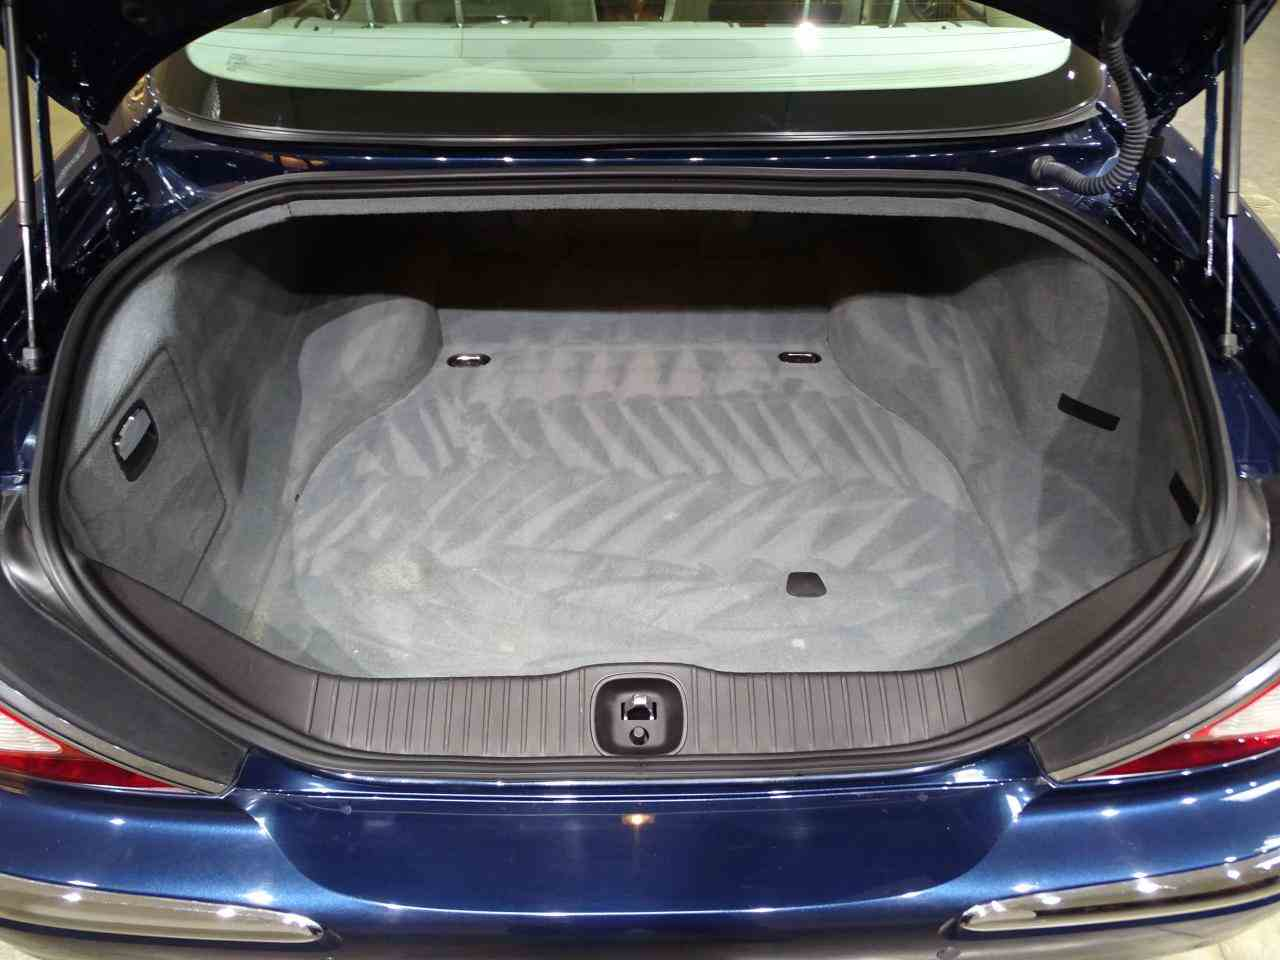 Large Picture of '06 Jaguar XJ8 located in Illinois - $14,995.00 Offered by Gateway Classic Cars - St. Louis - MFNT